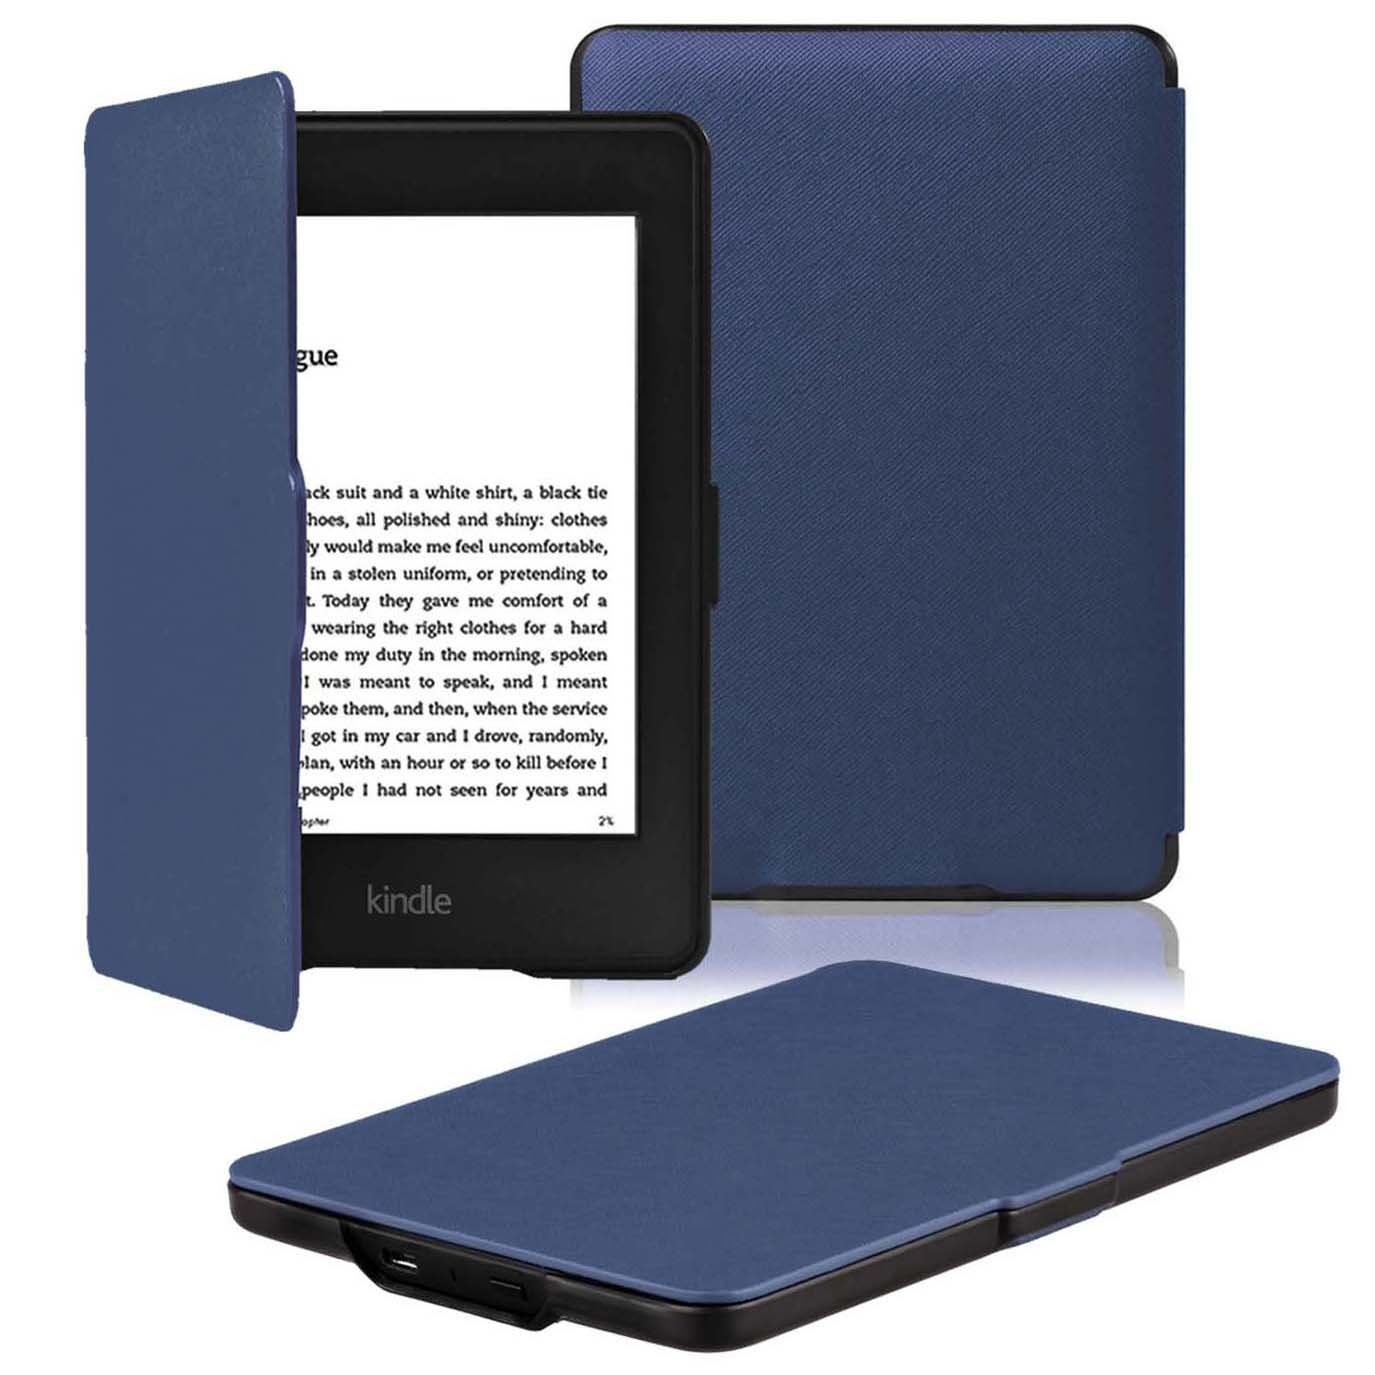 OMOTON Kindle Paperwhite Case Cover - PU Leather Smart Cover for All-New Kindle Paperwhite (Fits All versions: 2012, 2013, 2014 and 2015 All-new 300 PPI Version), Navy Blue by OMOTON